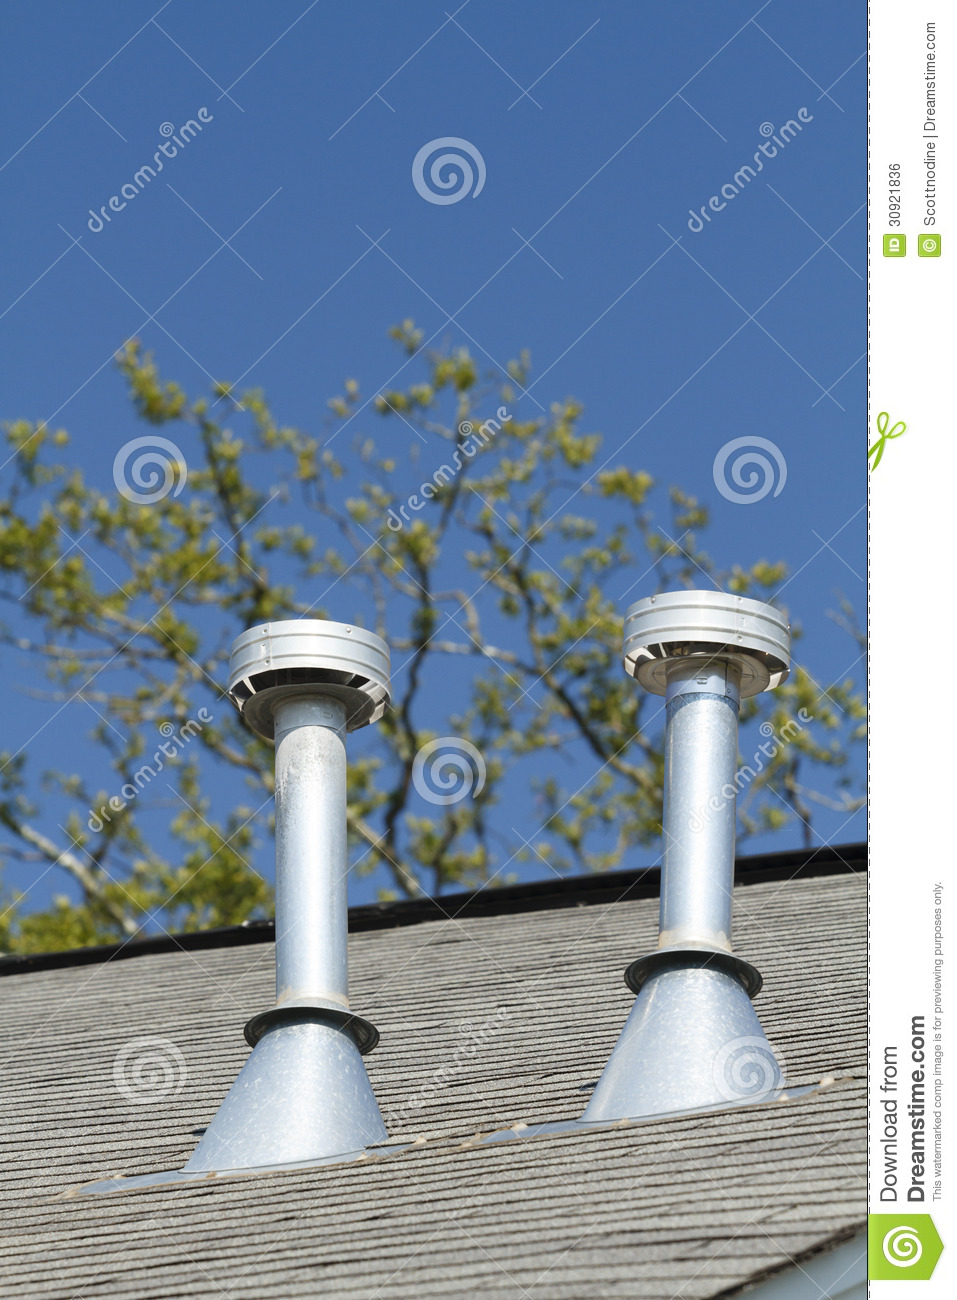 Roof Top Vent : Two residential roof exhaust vents royalty free stock